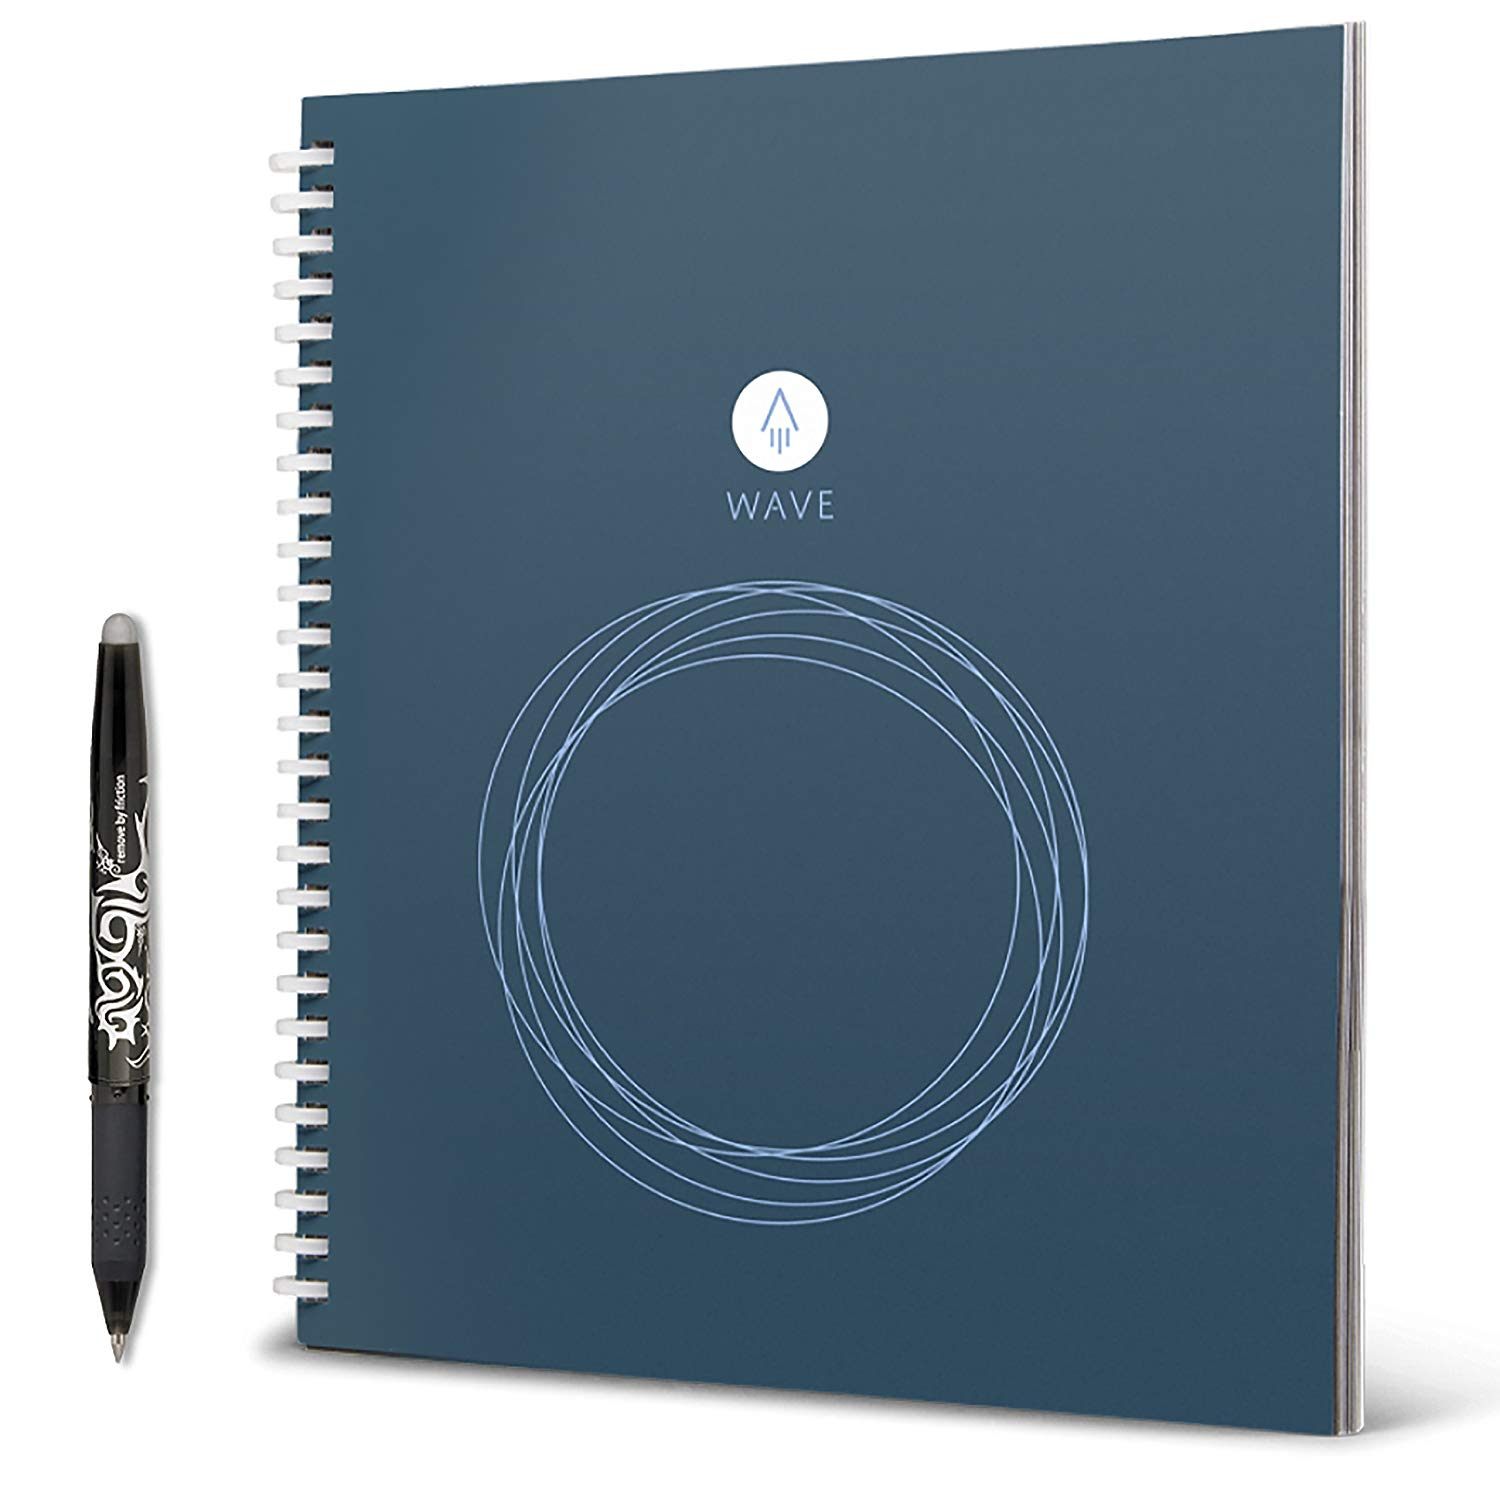 Rocketbook Wave - The last notebook you'll ever buy. Write anything and save it into your smartphone. It comes with frixion pens, it is erasable with paper moist towel.